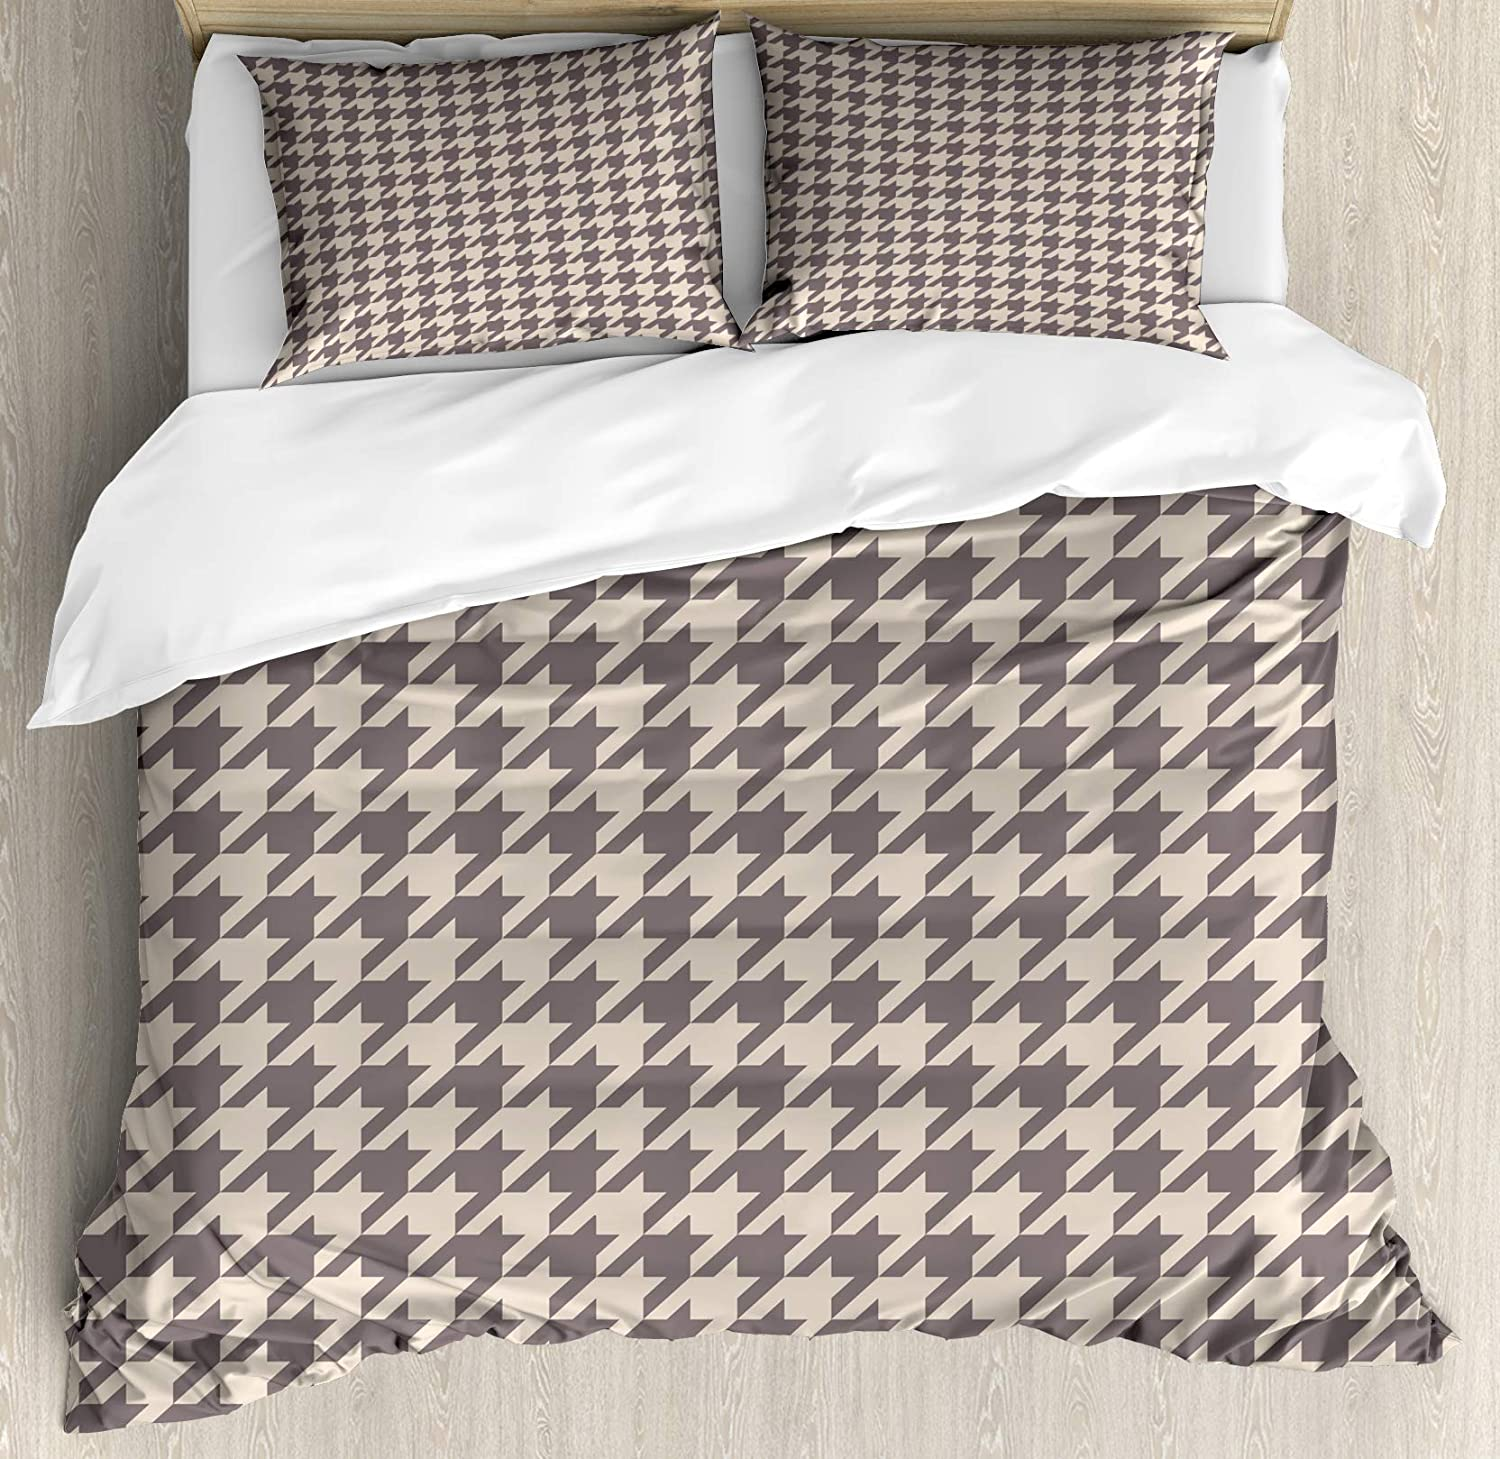 Lunarable Vintage Duvet Cover Set, Traditional Scottish Houndstooth Pattern in Pastel Colors Tartan Plaid Retro, Decorative 3 Piece Bedding Set with 2 Pillow Shams, King Size, Brown Umber